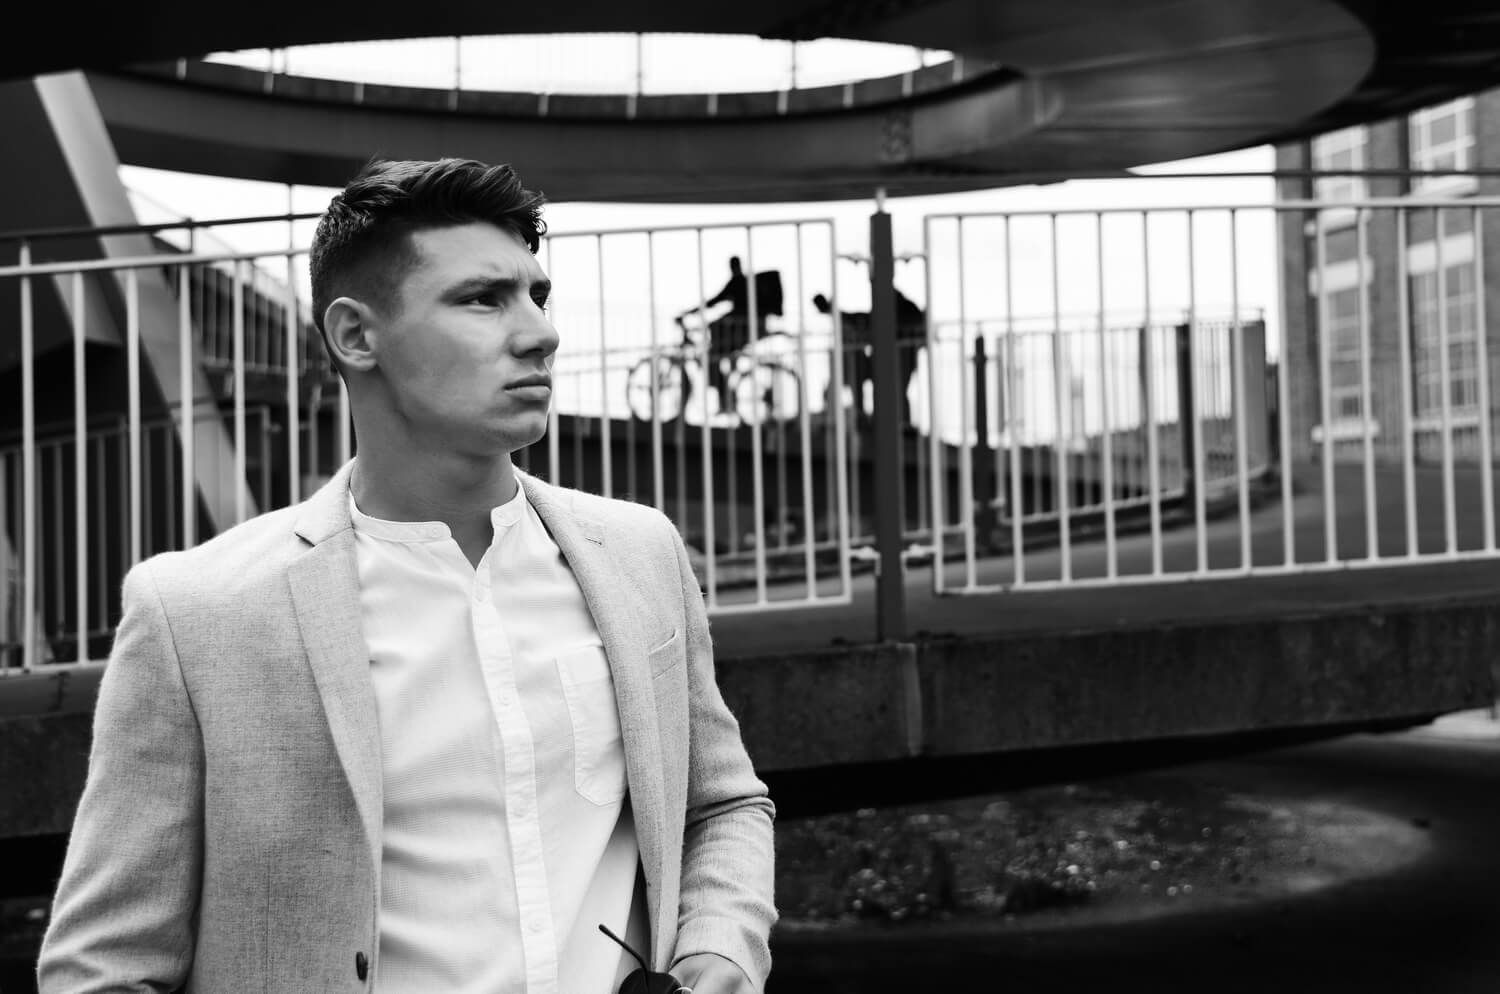 Portfolio photographer for male models. Professional, edgy studio and location photo shoots, vibrant stylish strong photography in cool, urban Birmingham environments